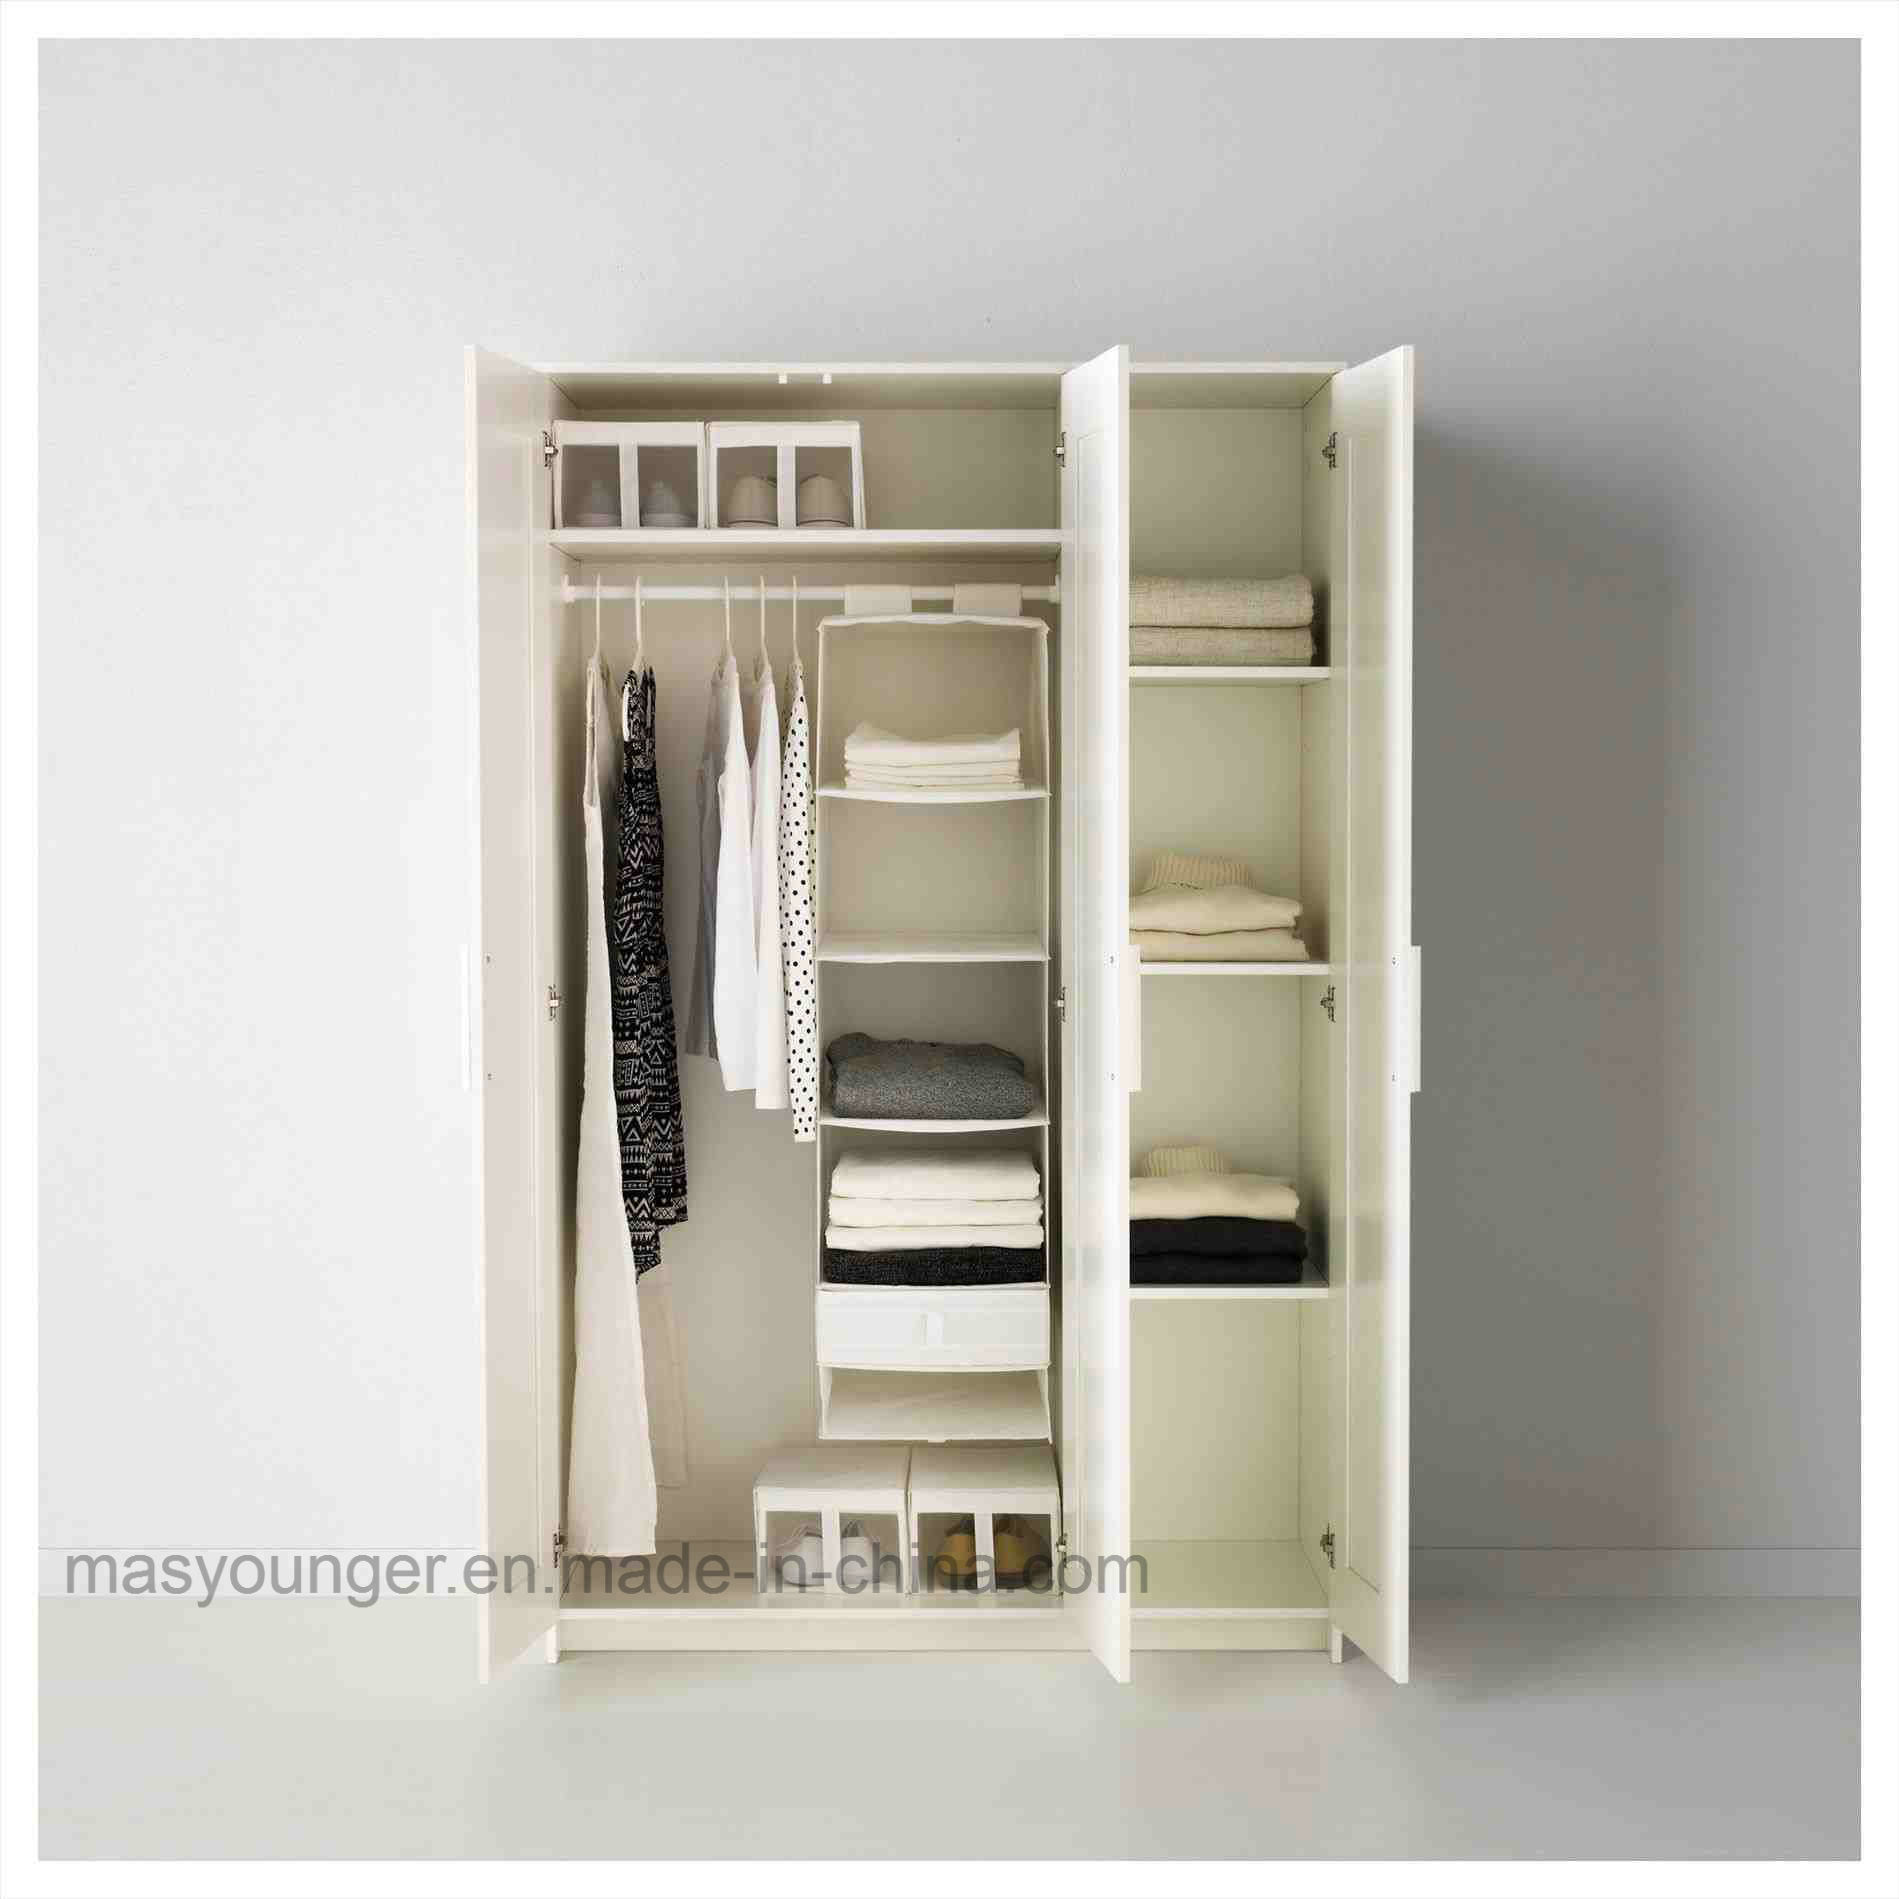 China Bedroom Customized Metal Clothing Storage Wardrobe ...